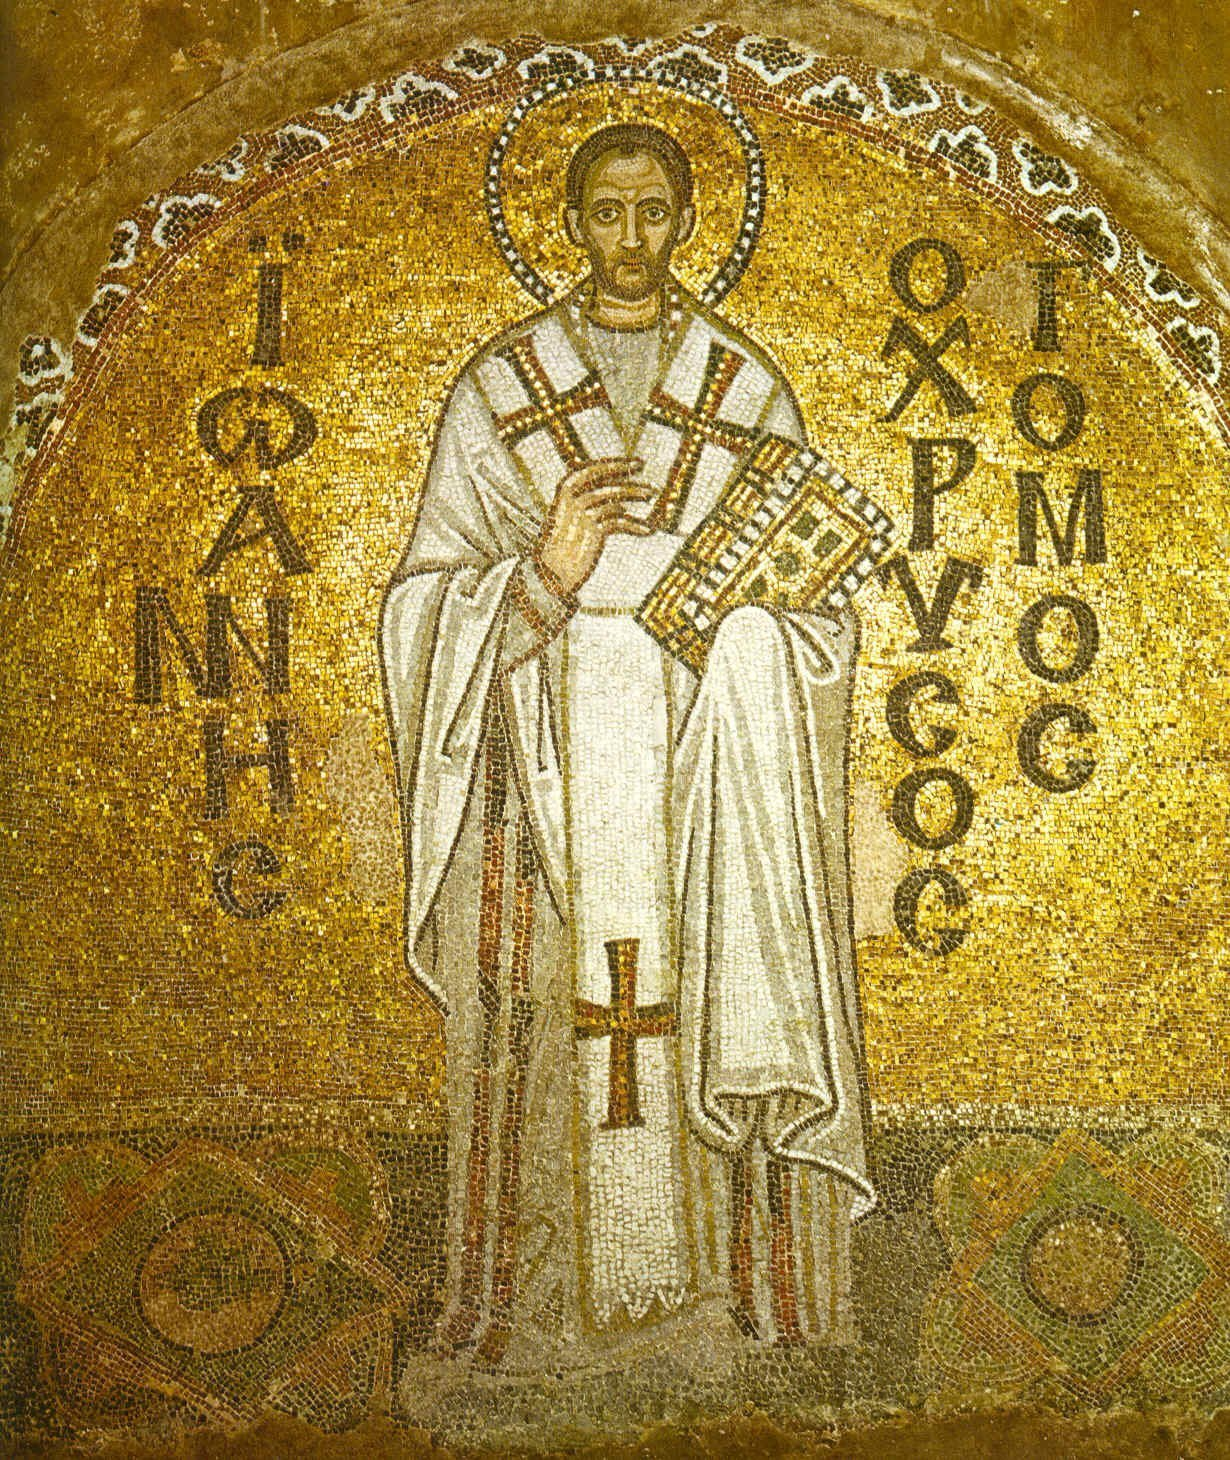 Who Was St. John Chrysostom?